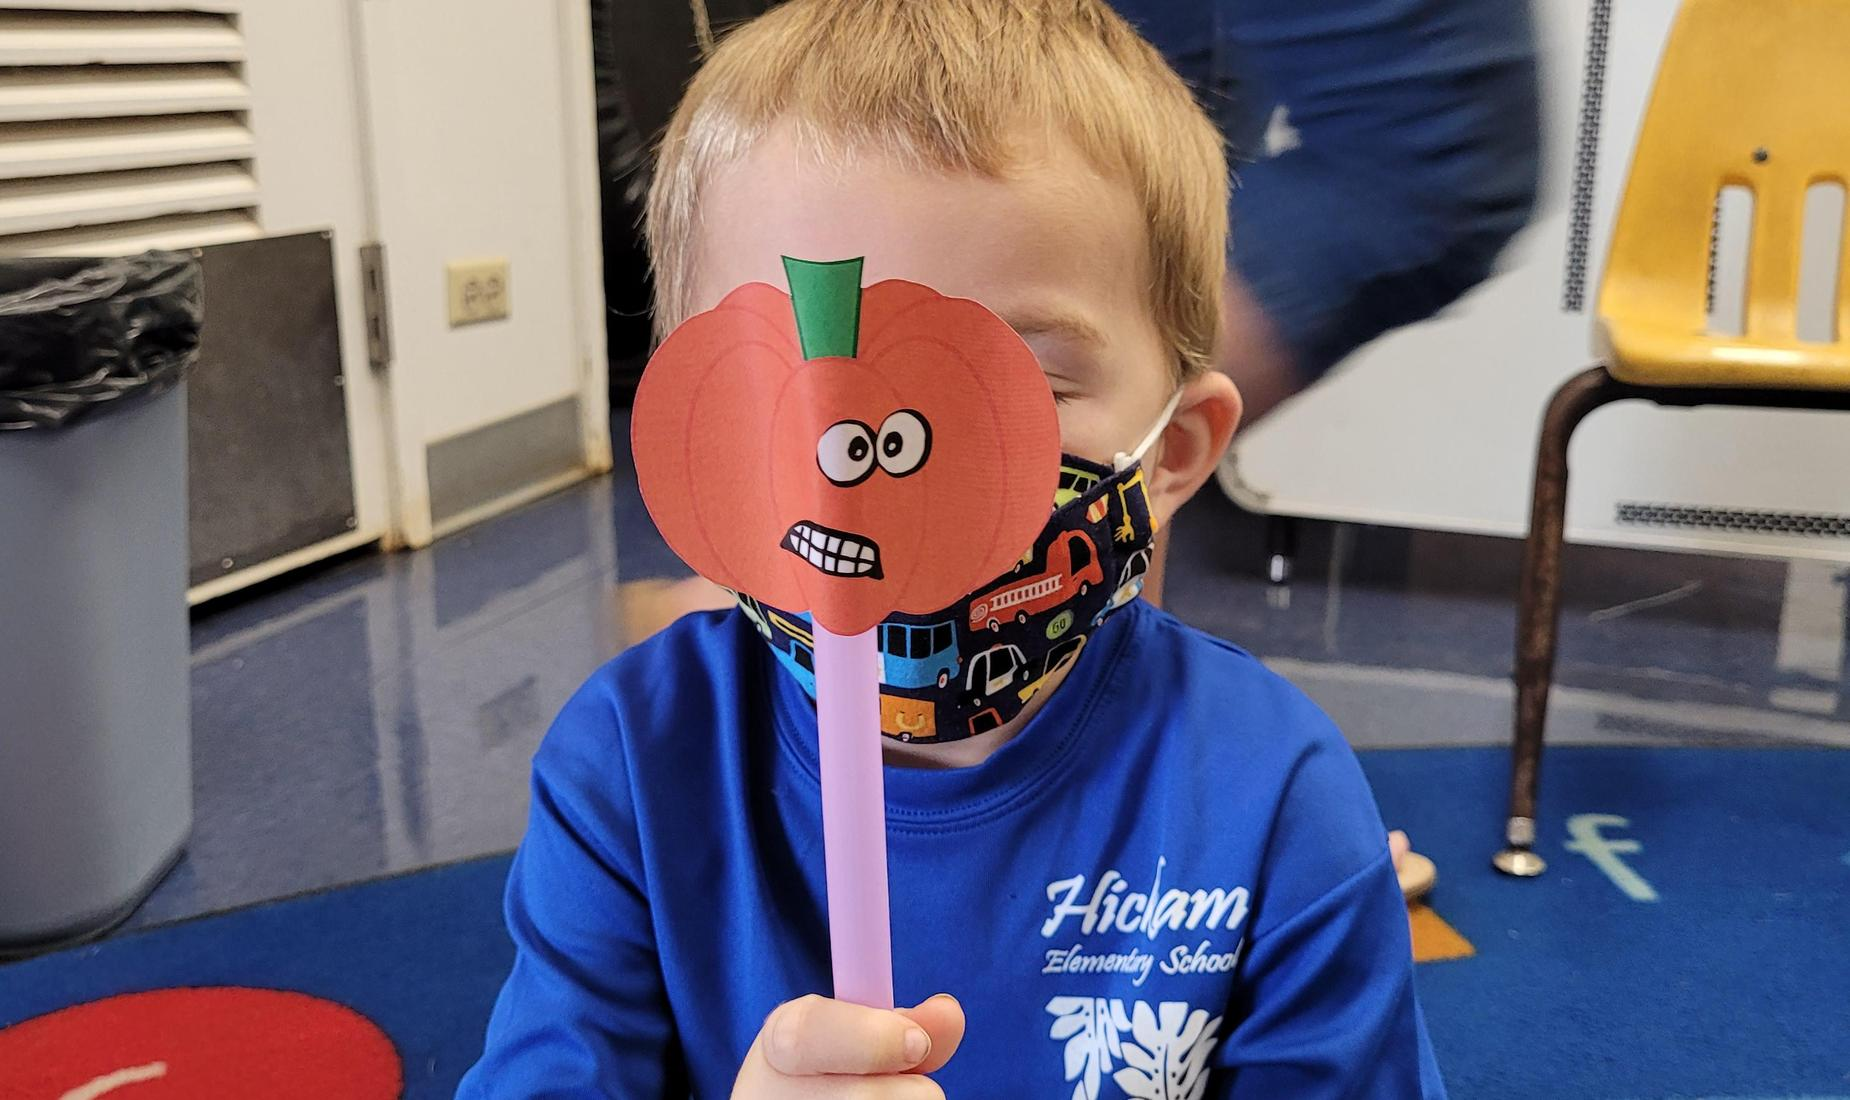 Student with pumpkin mask